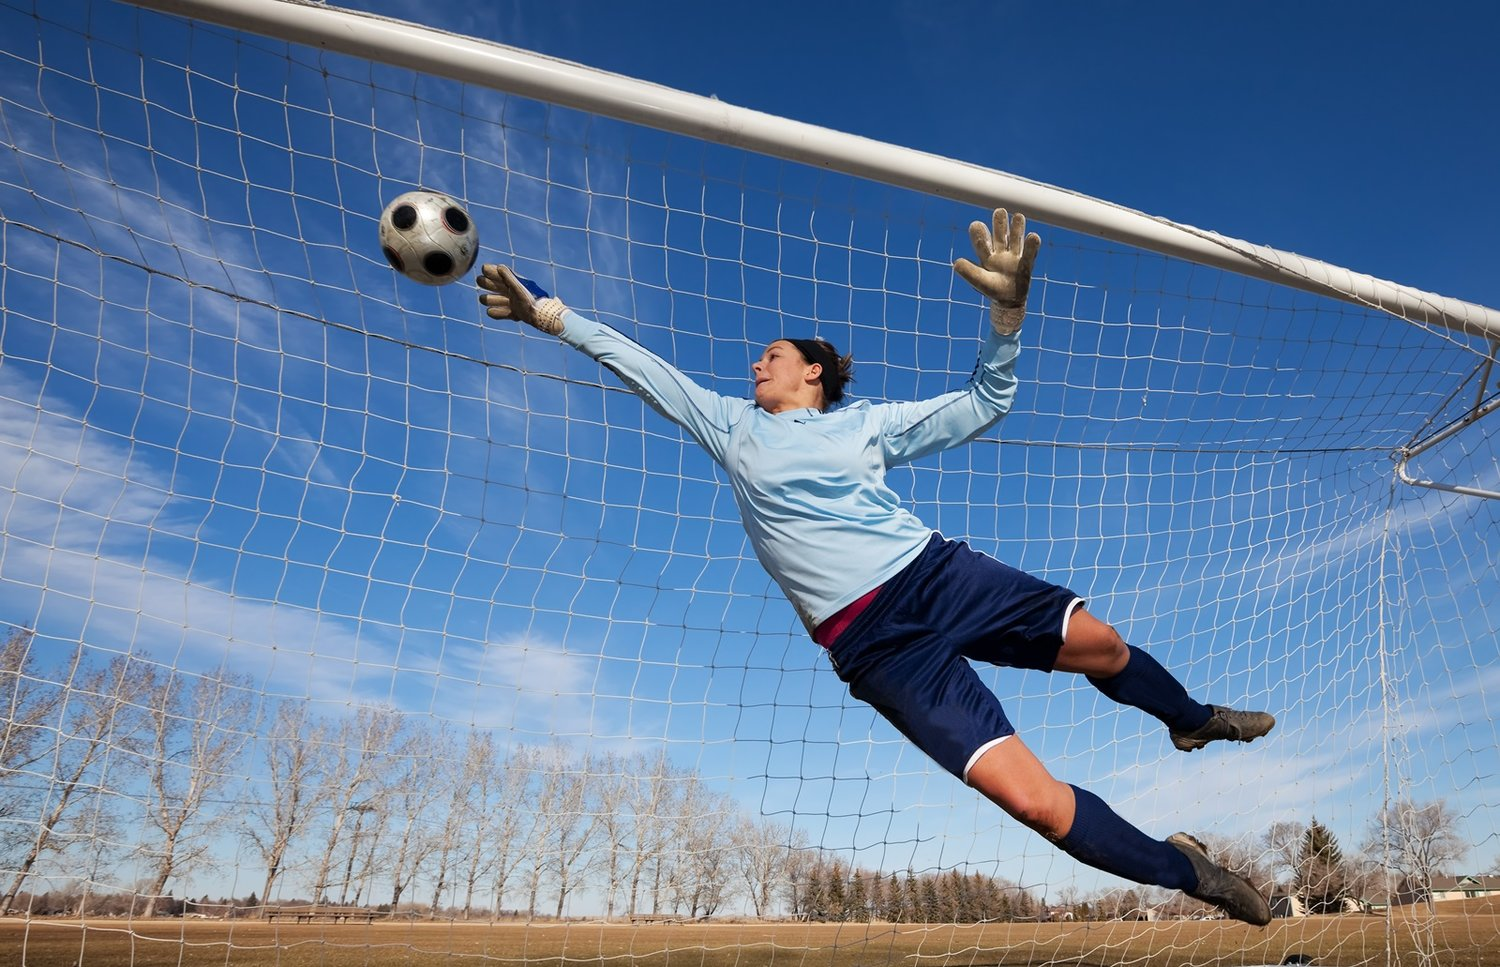 What Type of Goalkeeper Are You?